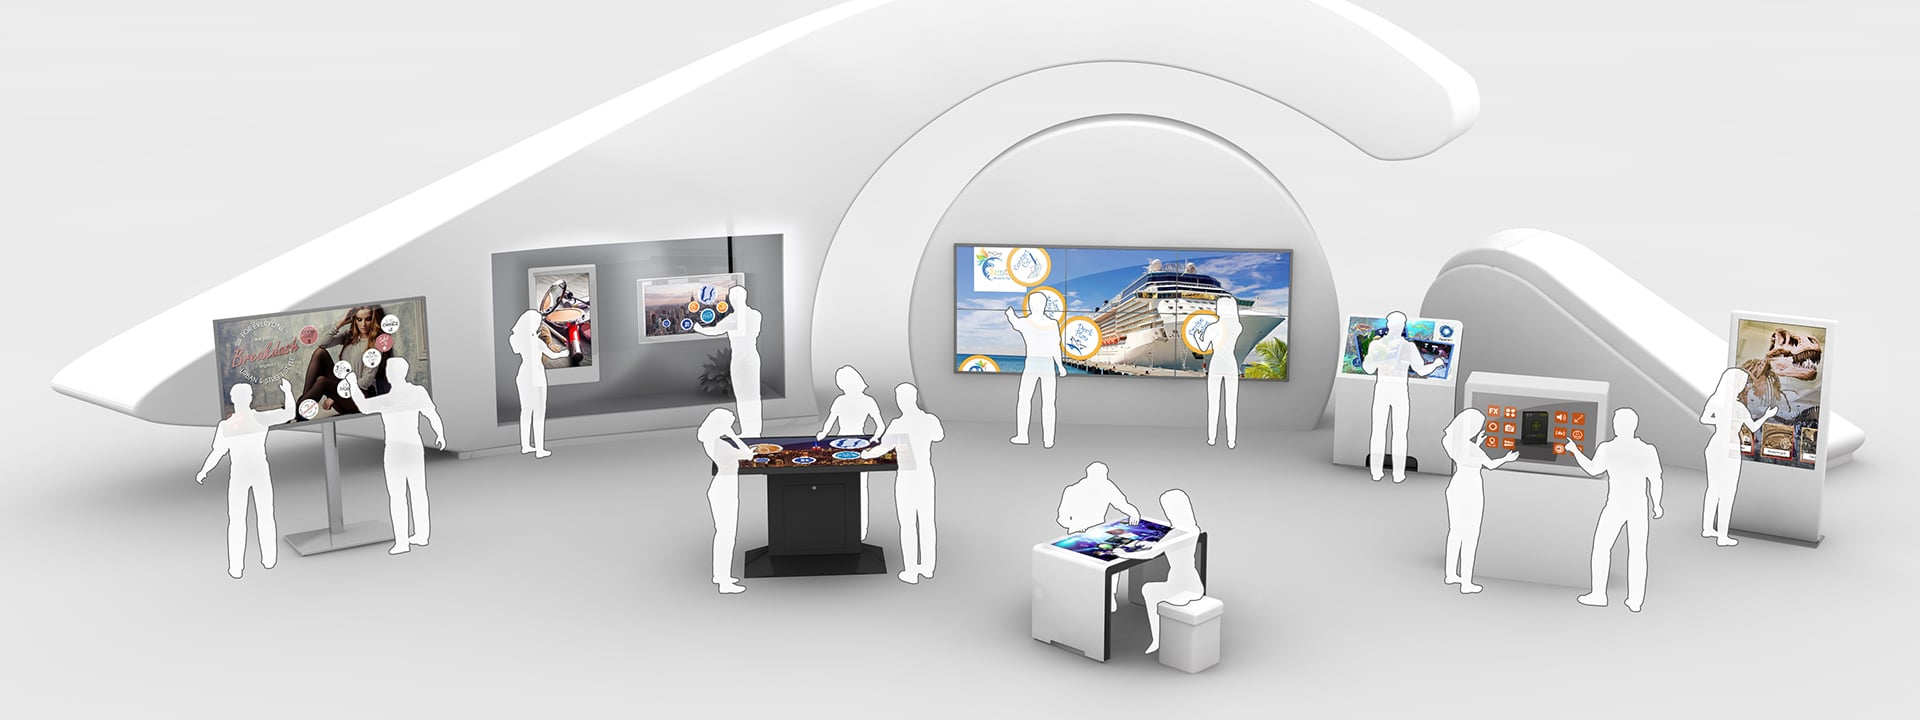 Multi touch screen software for Cruise Ships & Travel